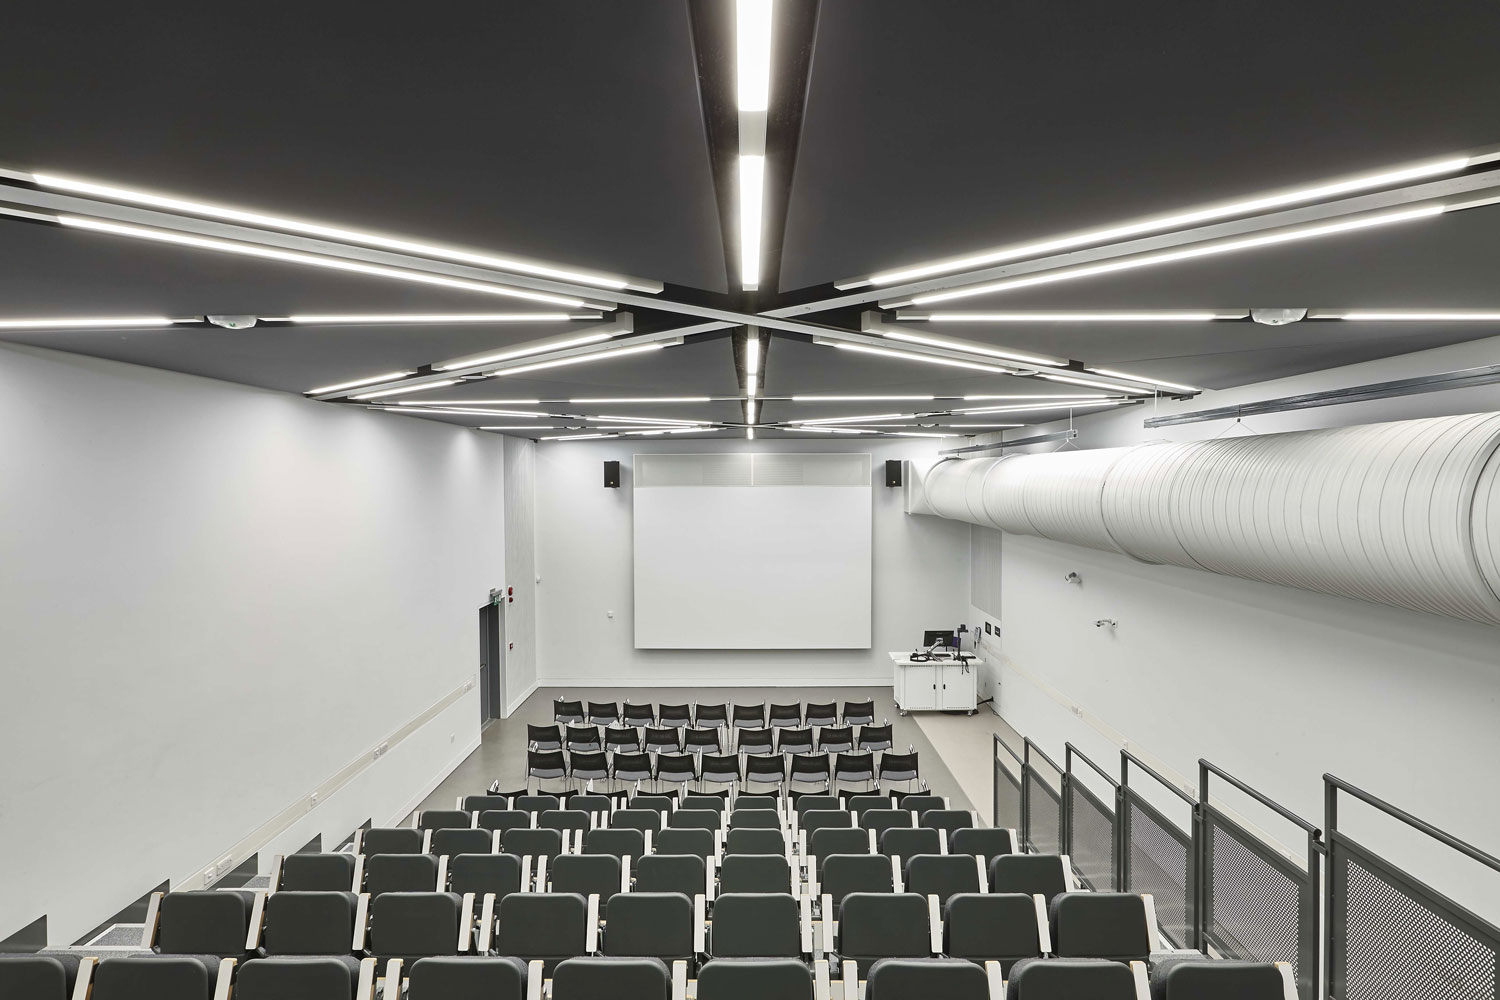 School of Art Lecture Theatre, Southampton University, Winchester | Construction Installation Photography | Interior Photography